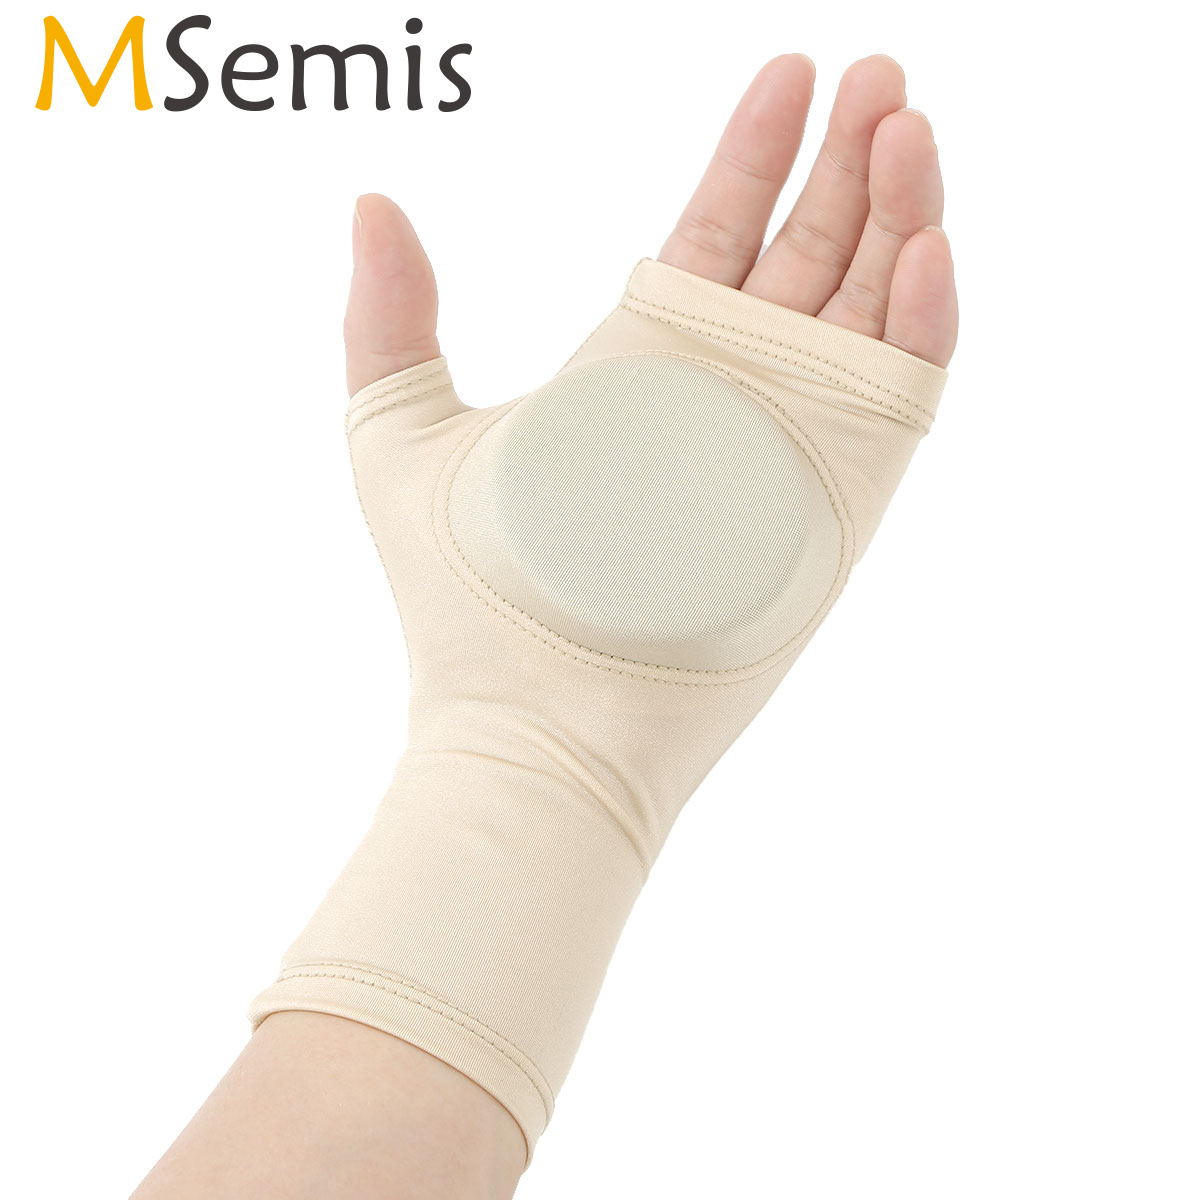 MSemis 1 Pair Figure Skating Hand Protector Pad Cover Adult Kids Girls Boys Ice Skating Safety Gloves Palm For Training Practice